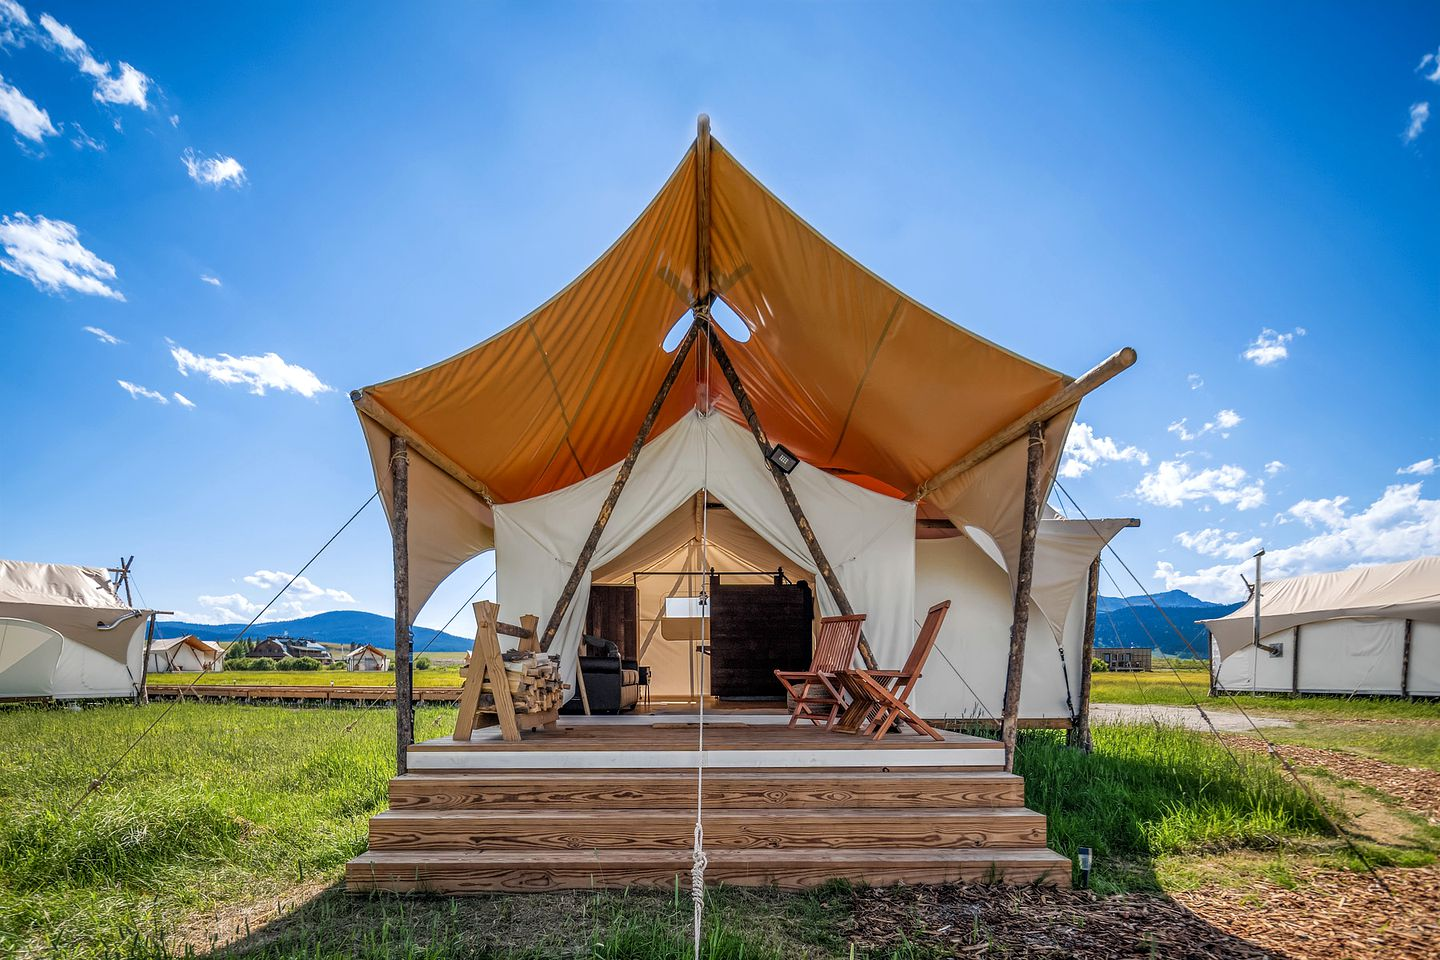 Tents (West Yellowstone, United States)